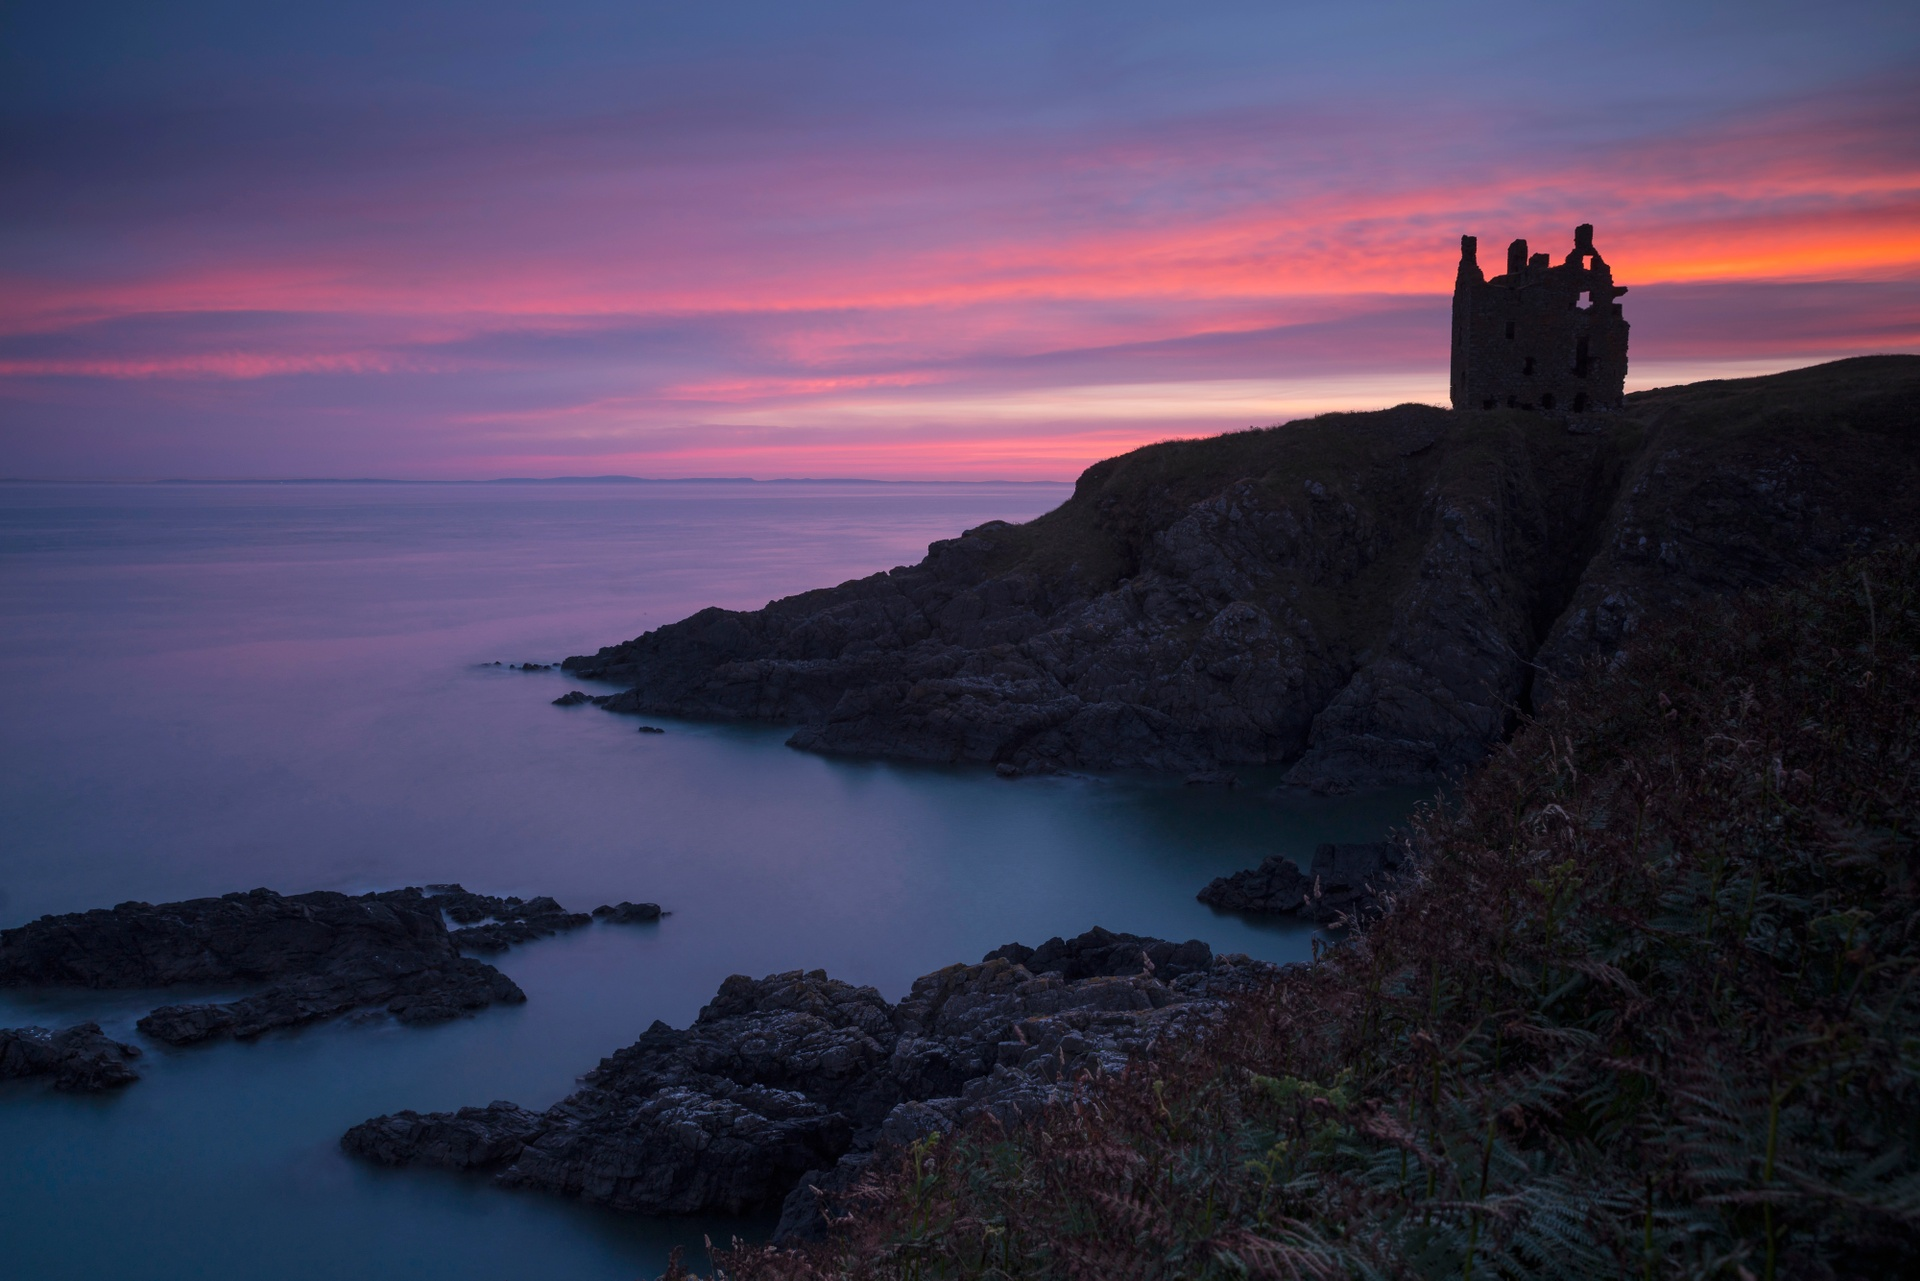 Dunskey Castle perched on a rocky outcrop jutting out into the Irish Sea was built in the mid-16th century for the Adairs of Kinhilt